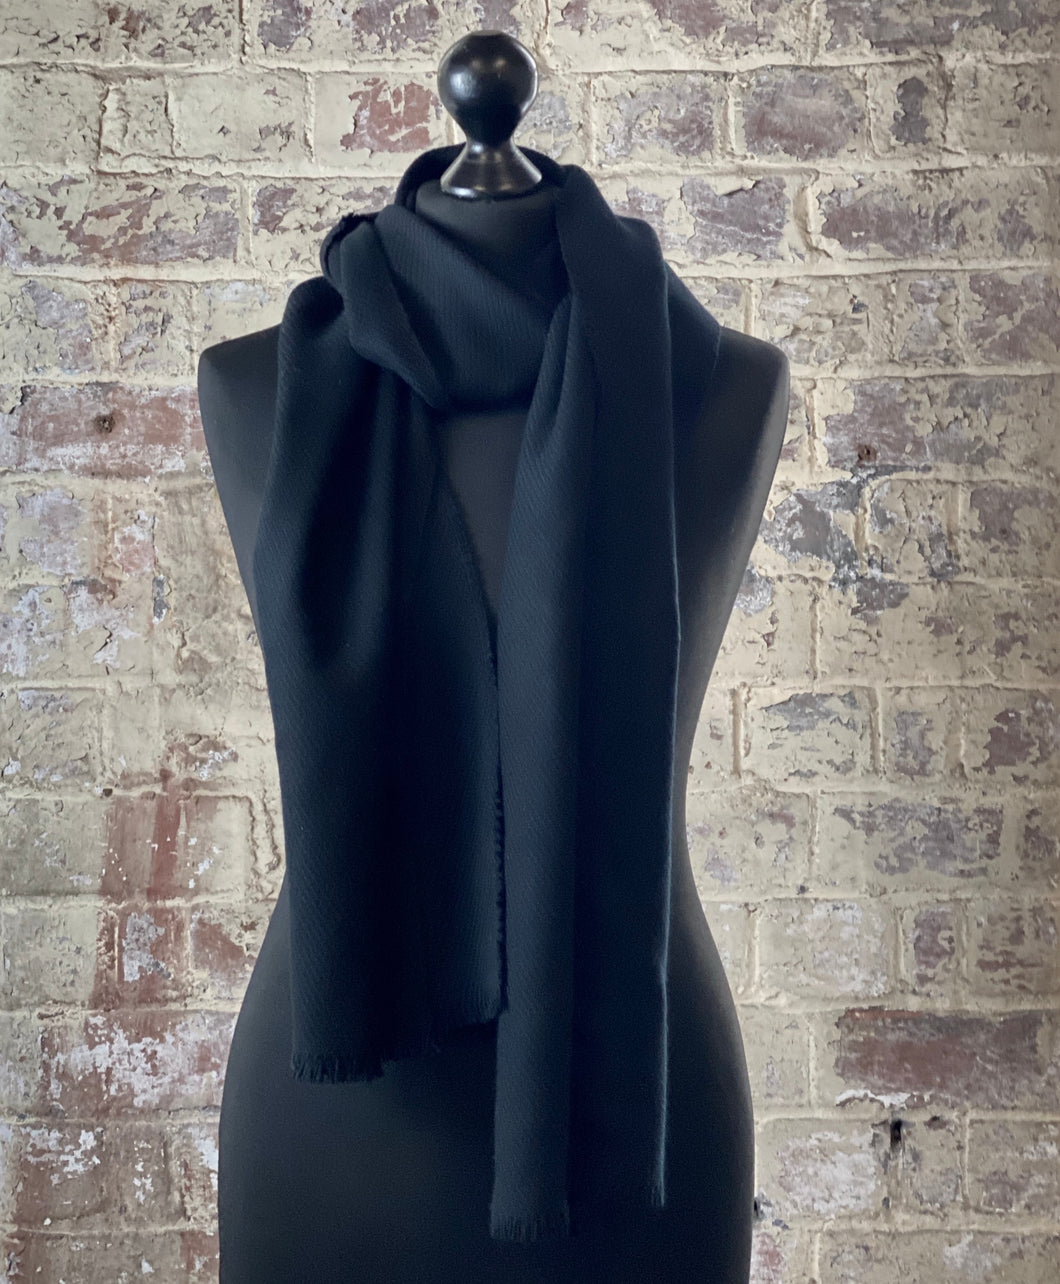 100% pure cashmere scarf shawl wrap pashmina sustainable black UK Scotland mens womens